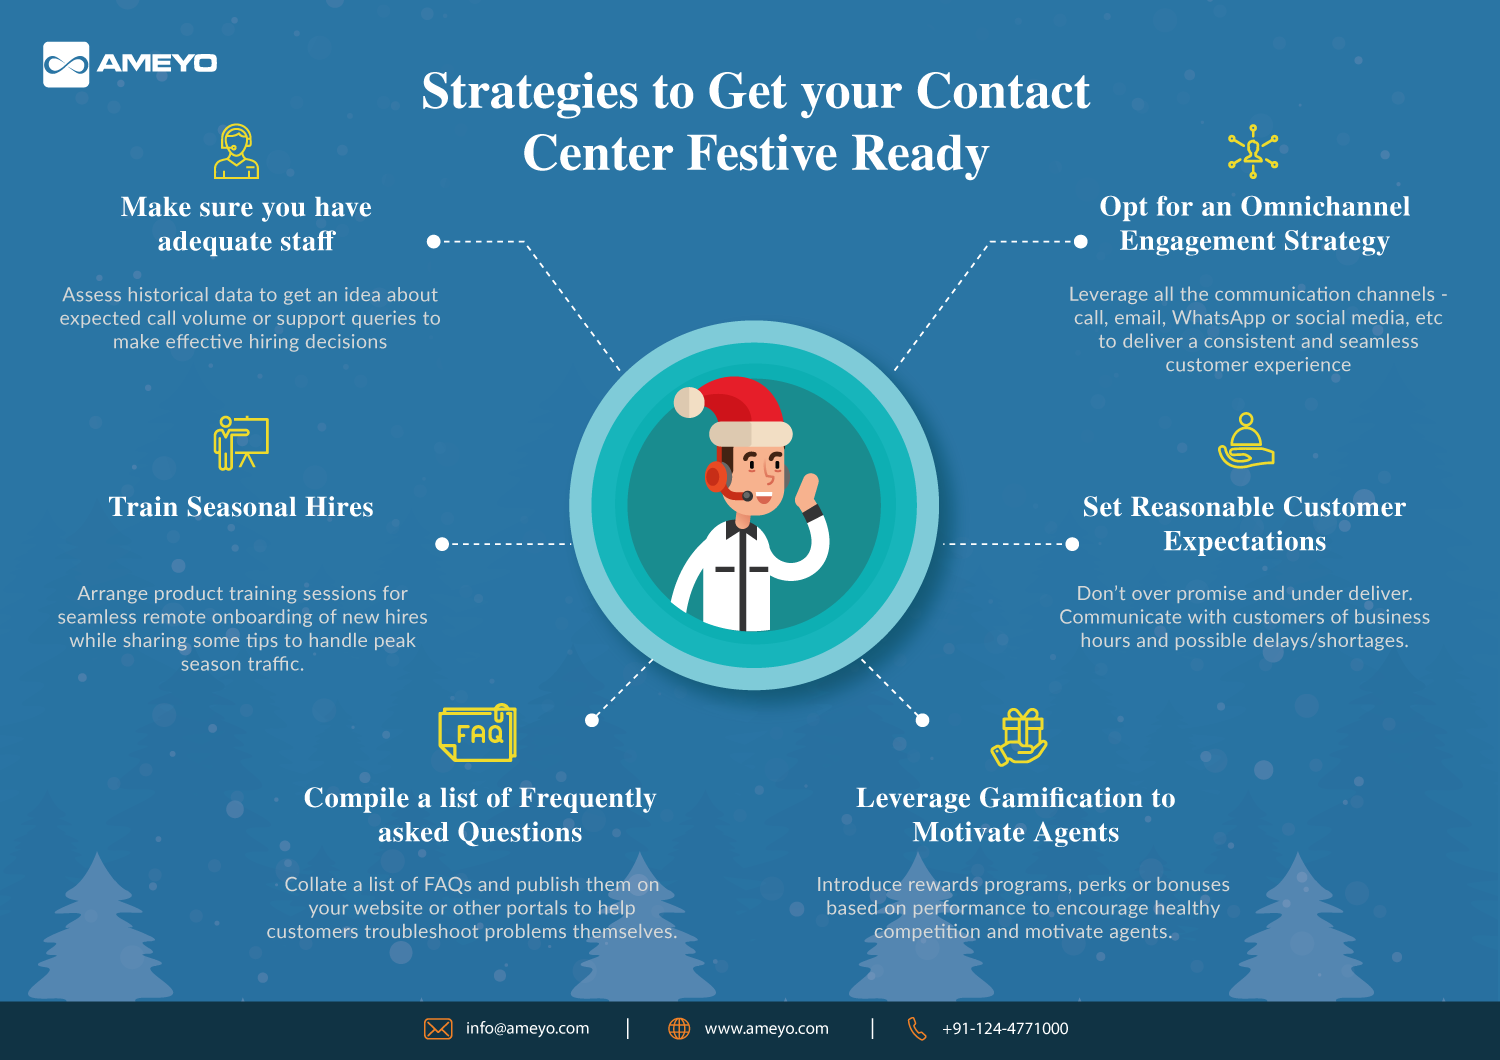 Prepare your Contact Center for Holiday Season Infographic